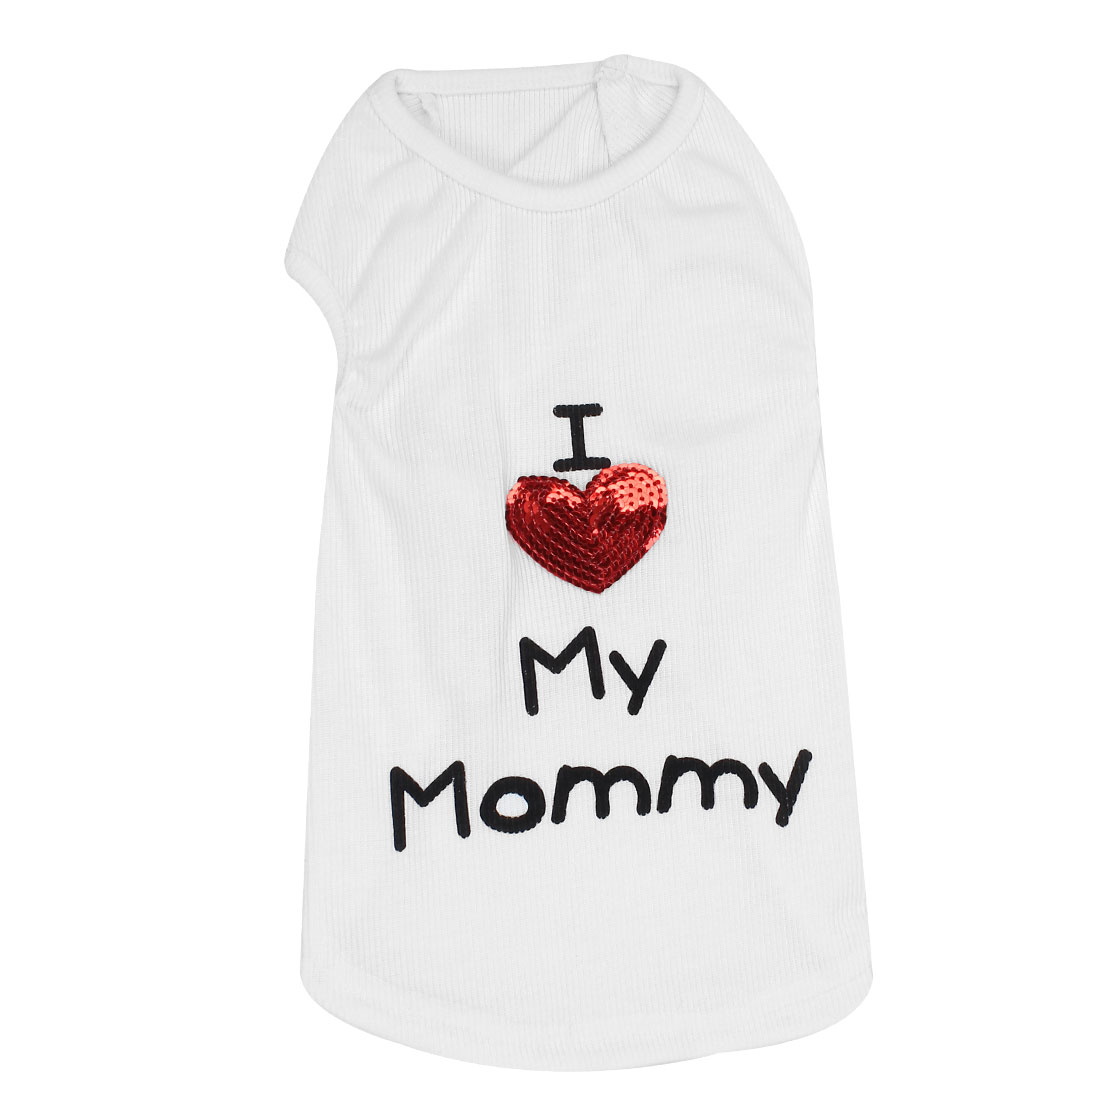 I Love My Mommy Pet Puppy Summer Tank Top T-shirt Vest Clothes Apparel White Size L